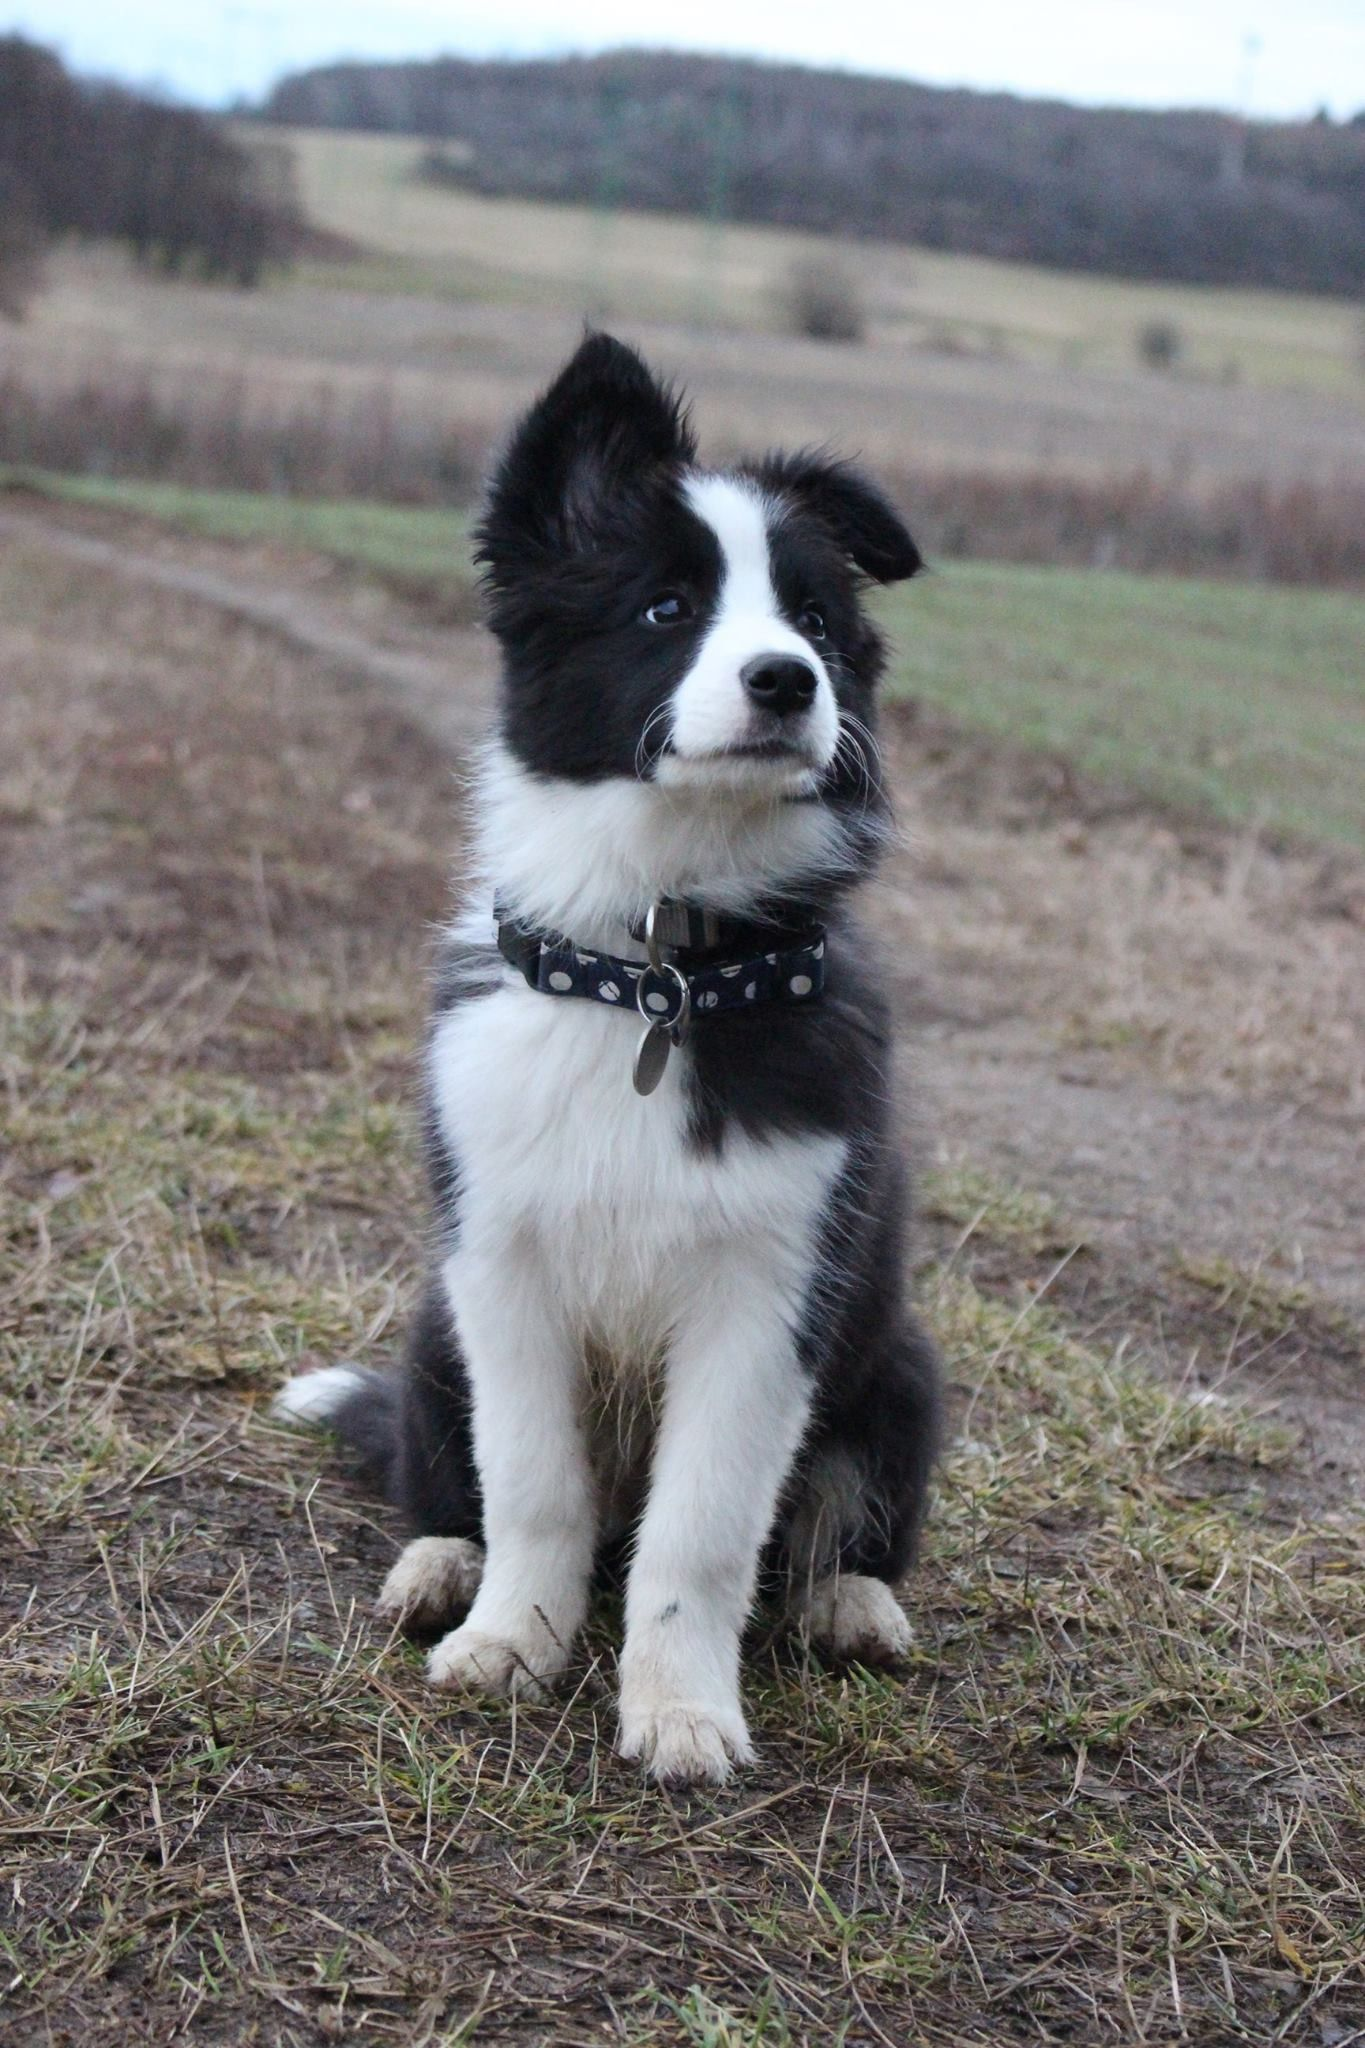 Awe A Sweet Little Border Collie Pupper Cute Dogs Breeds